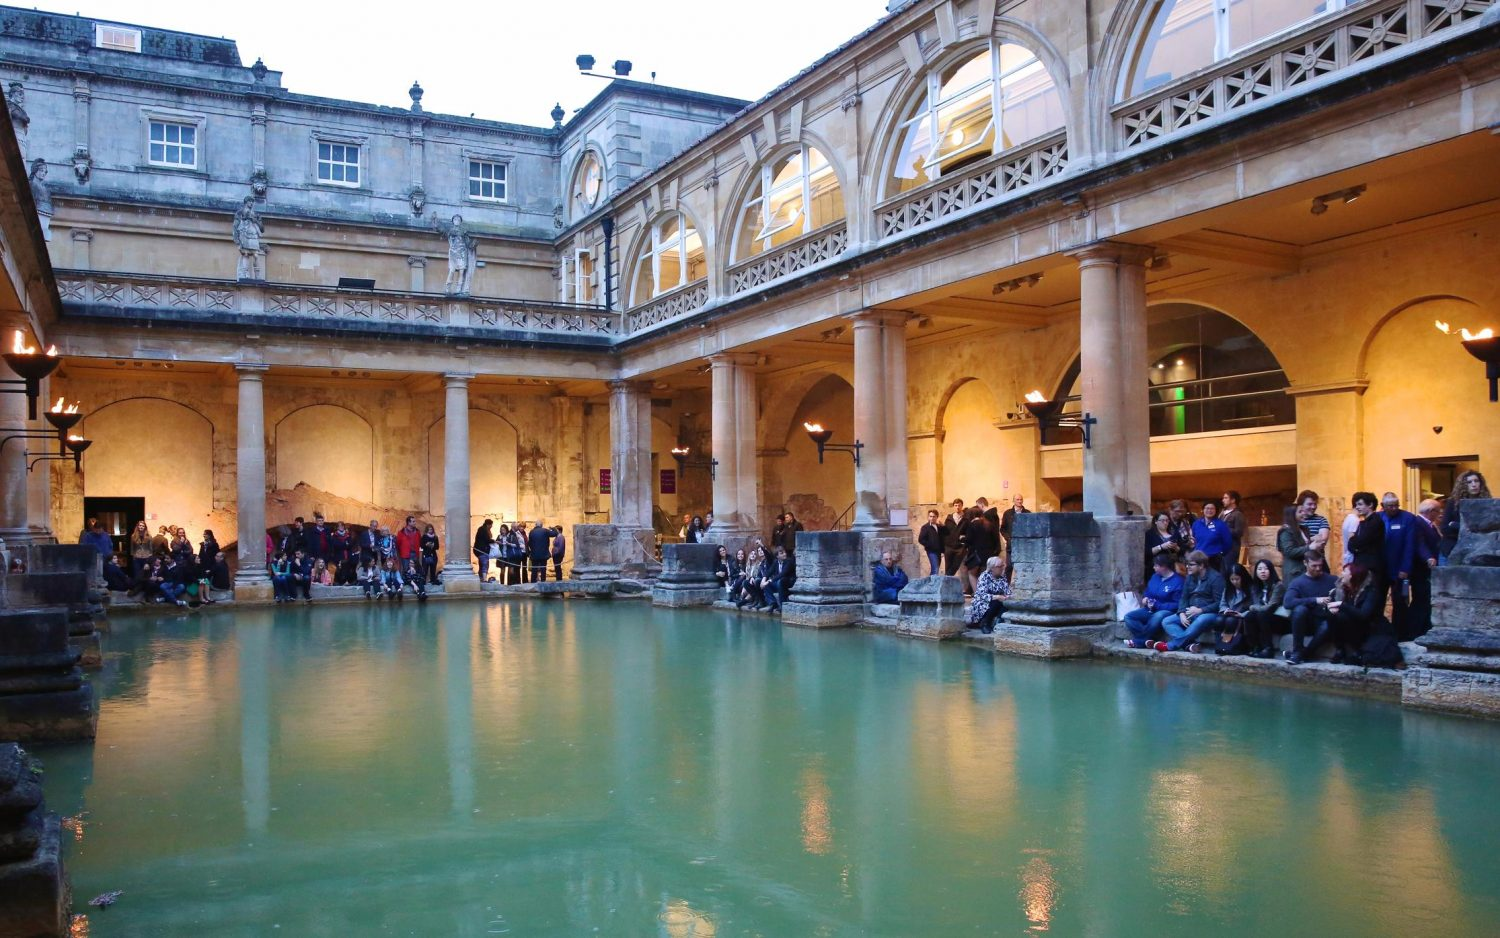 Stonehenge and Bath Tour - The Roman Baths